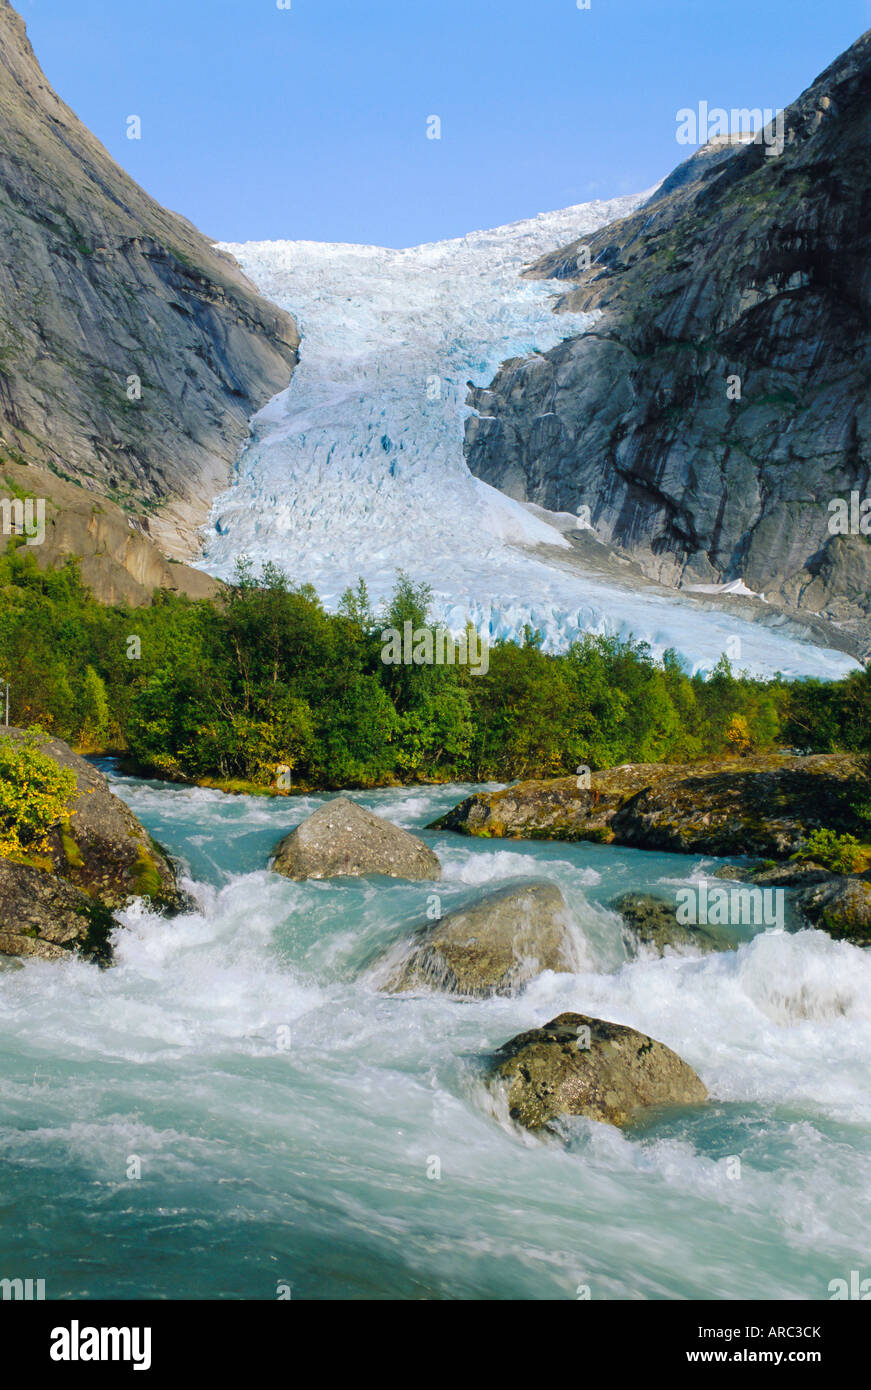 Briksdalbreen Glacier near Olden, Western Fjords, Norway - Stock Image